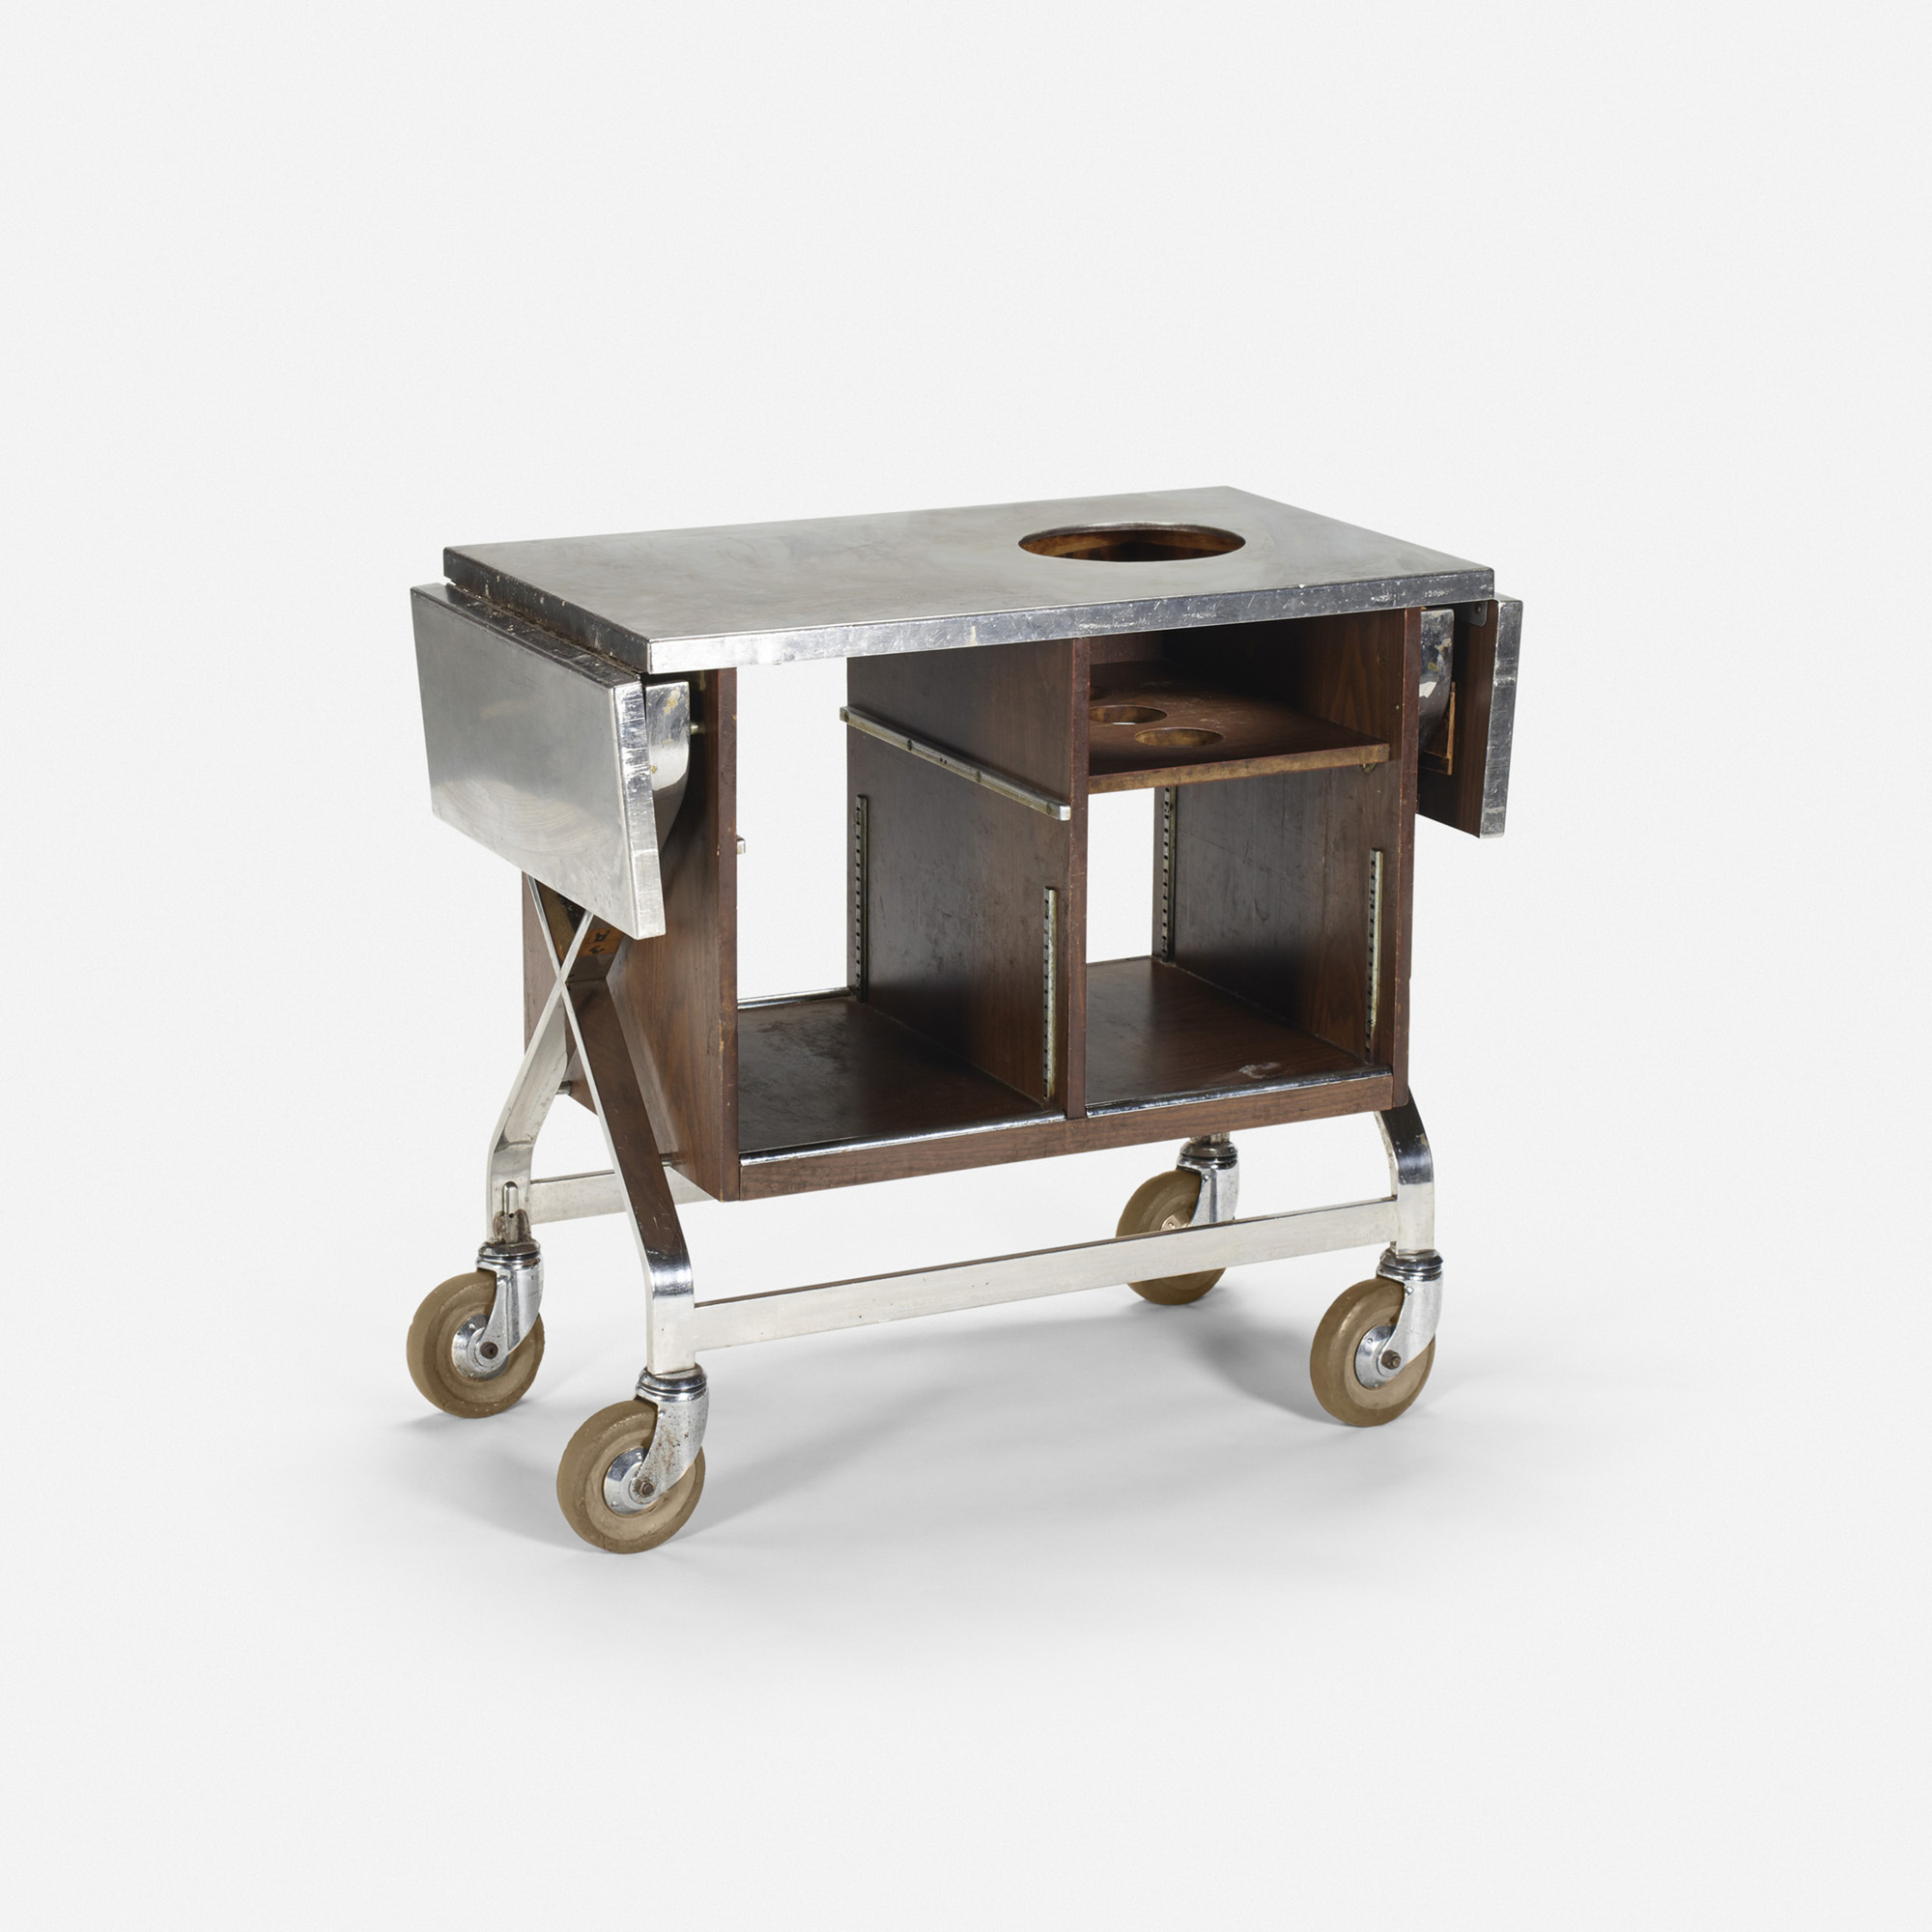 625: Garth and Ada Louise Huxtable / Serving cart from The Four Seasons (1 of 1)